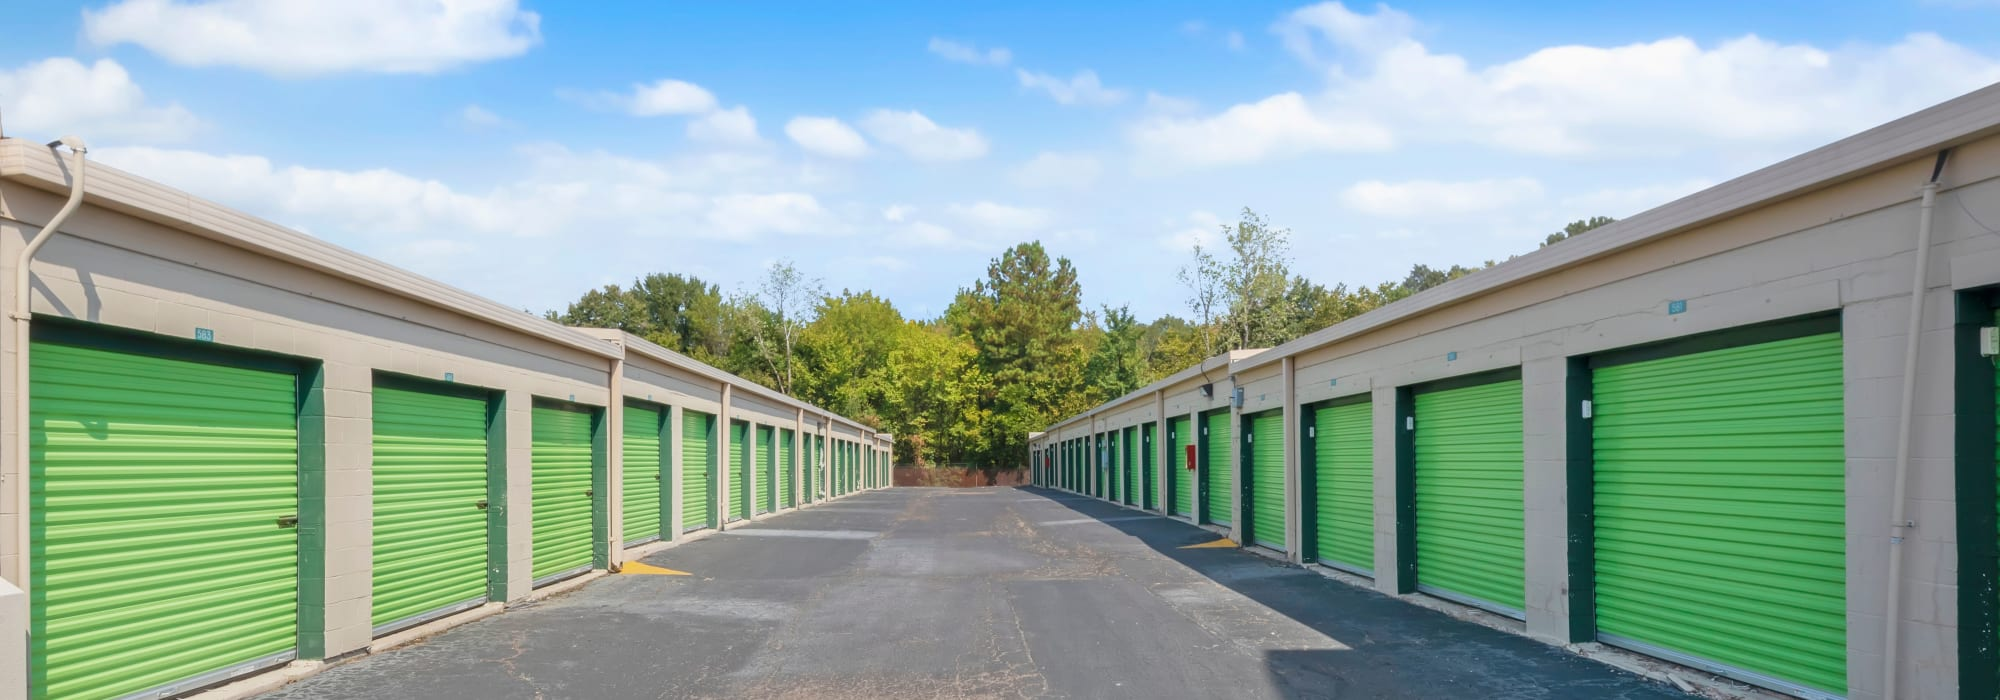 Storage features at Citizen Storage in Memphis, Tennessee